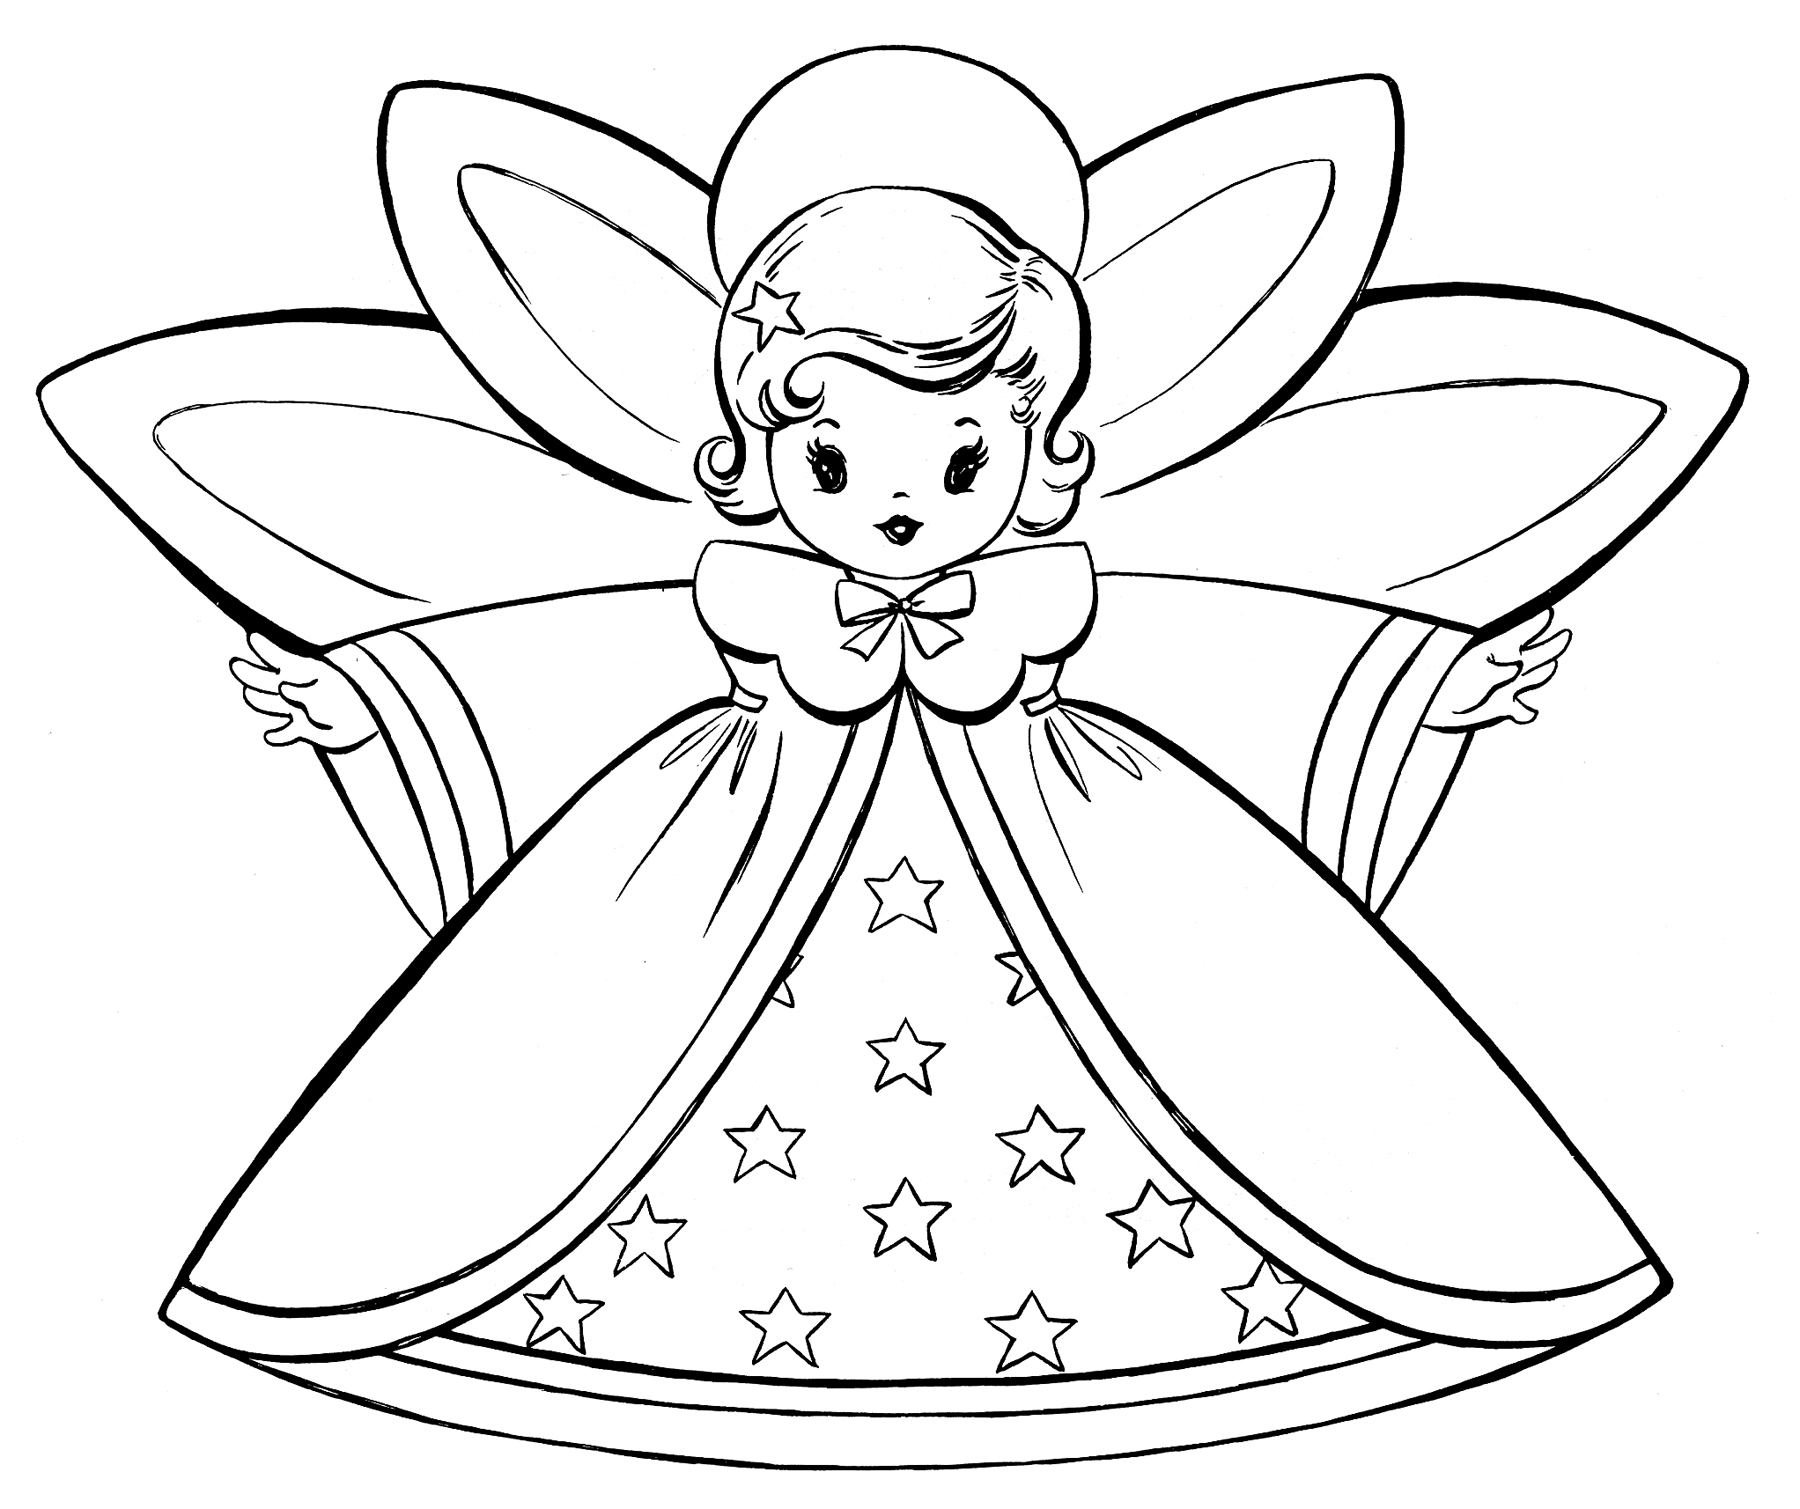 printable pictures of angels christmas angel coloring pages free printable christmas pictures printable angels of